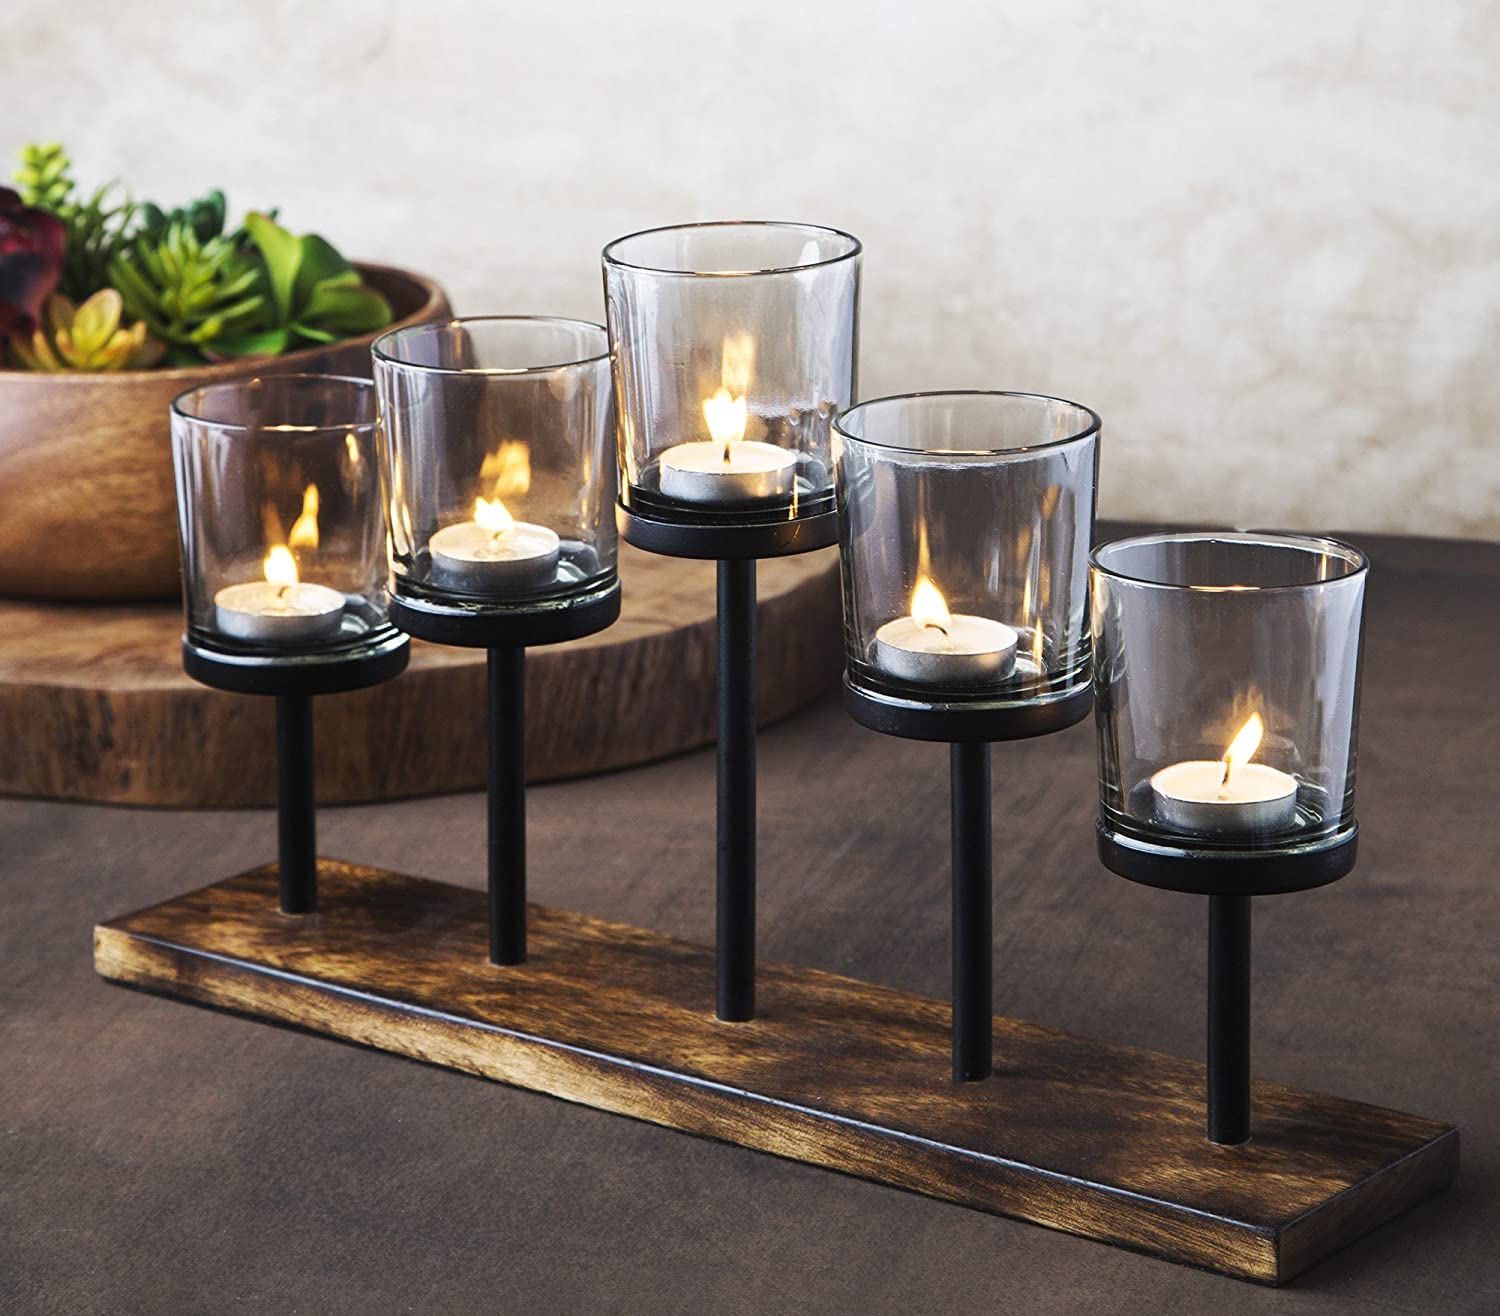 Le Raze Elegant Decorative Votive Candle Holder Centerpiece 5 Glass Votive Cups On Wood Base Tray For Wedding Decoration Dining Table Amazon Ca Home Kitchen